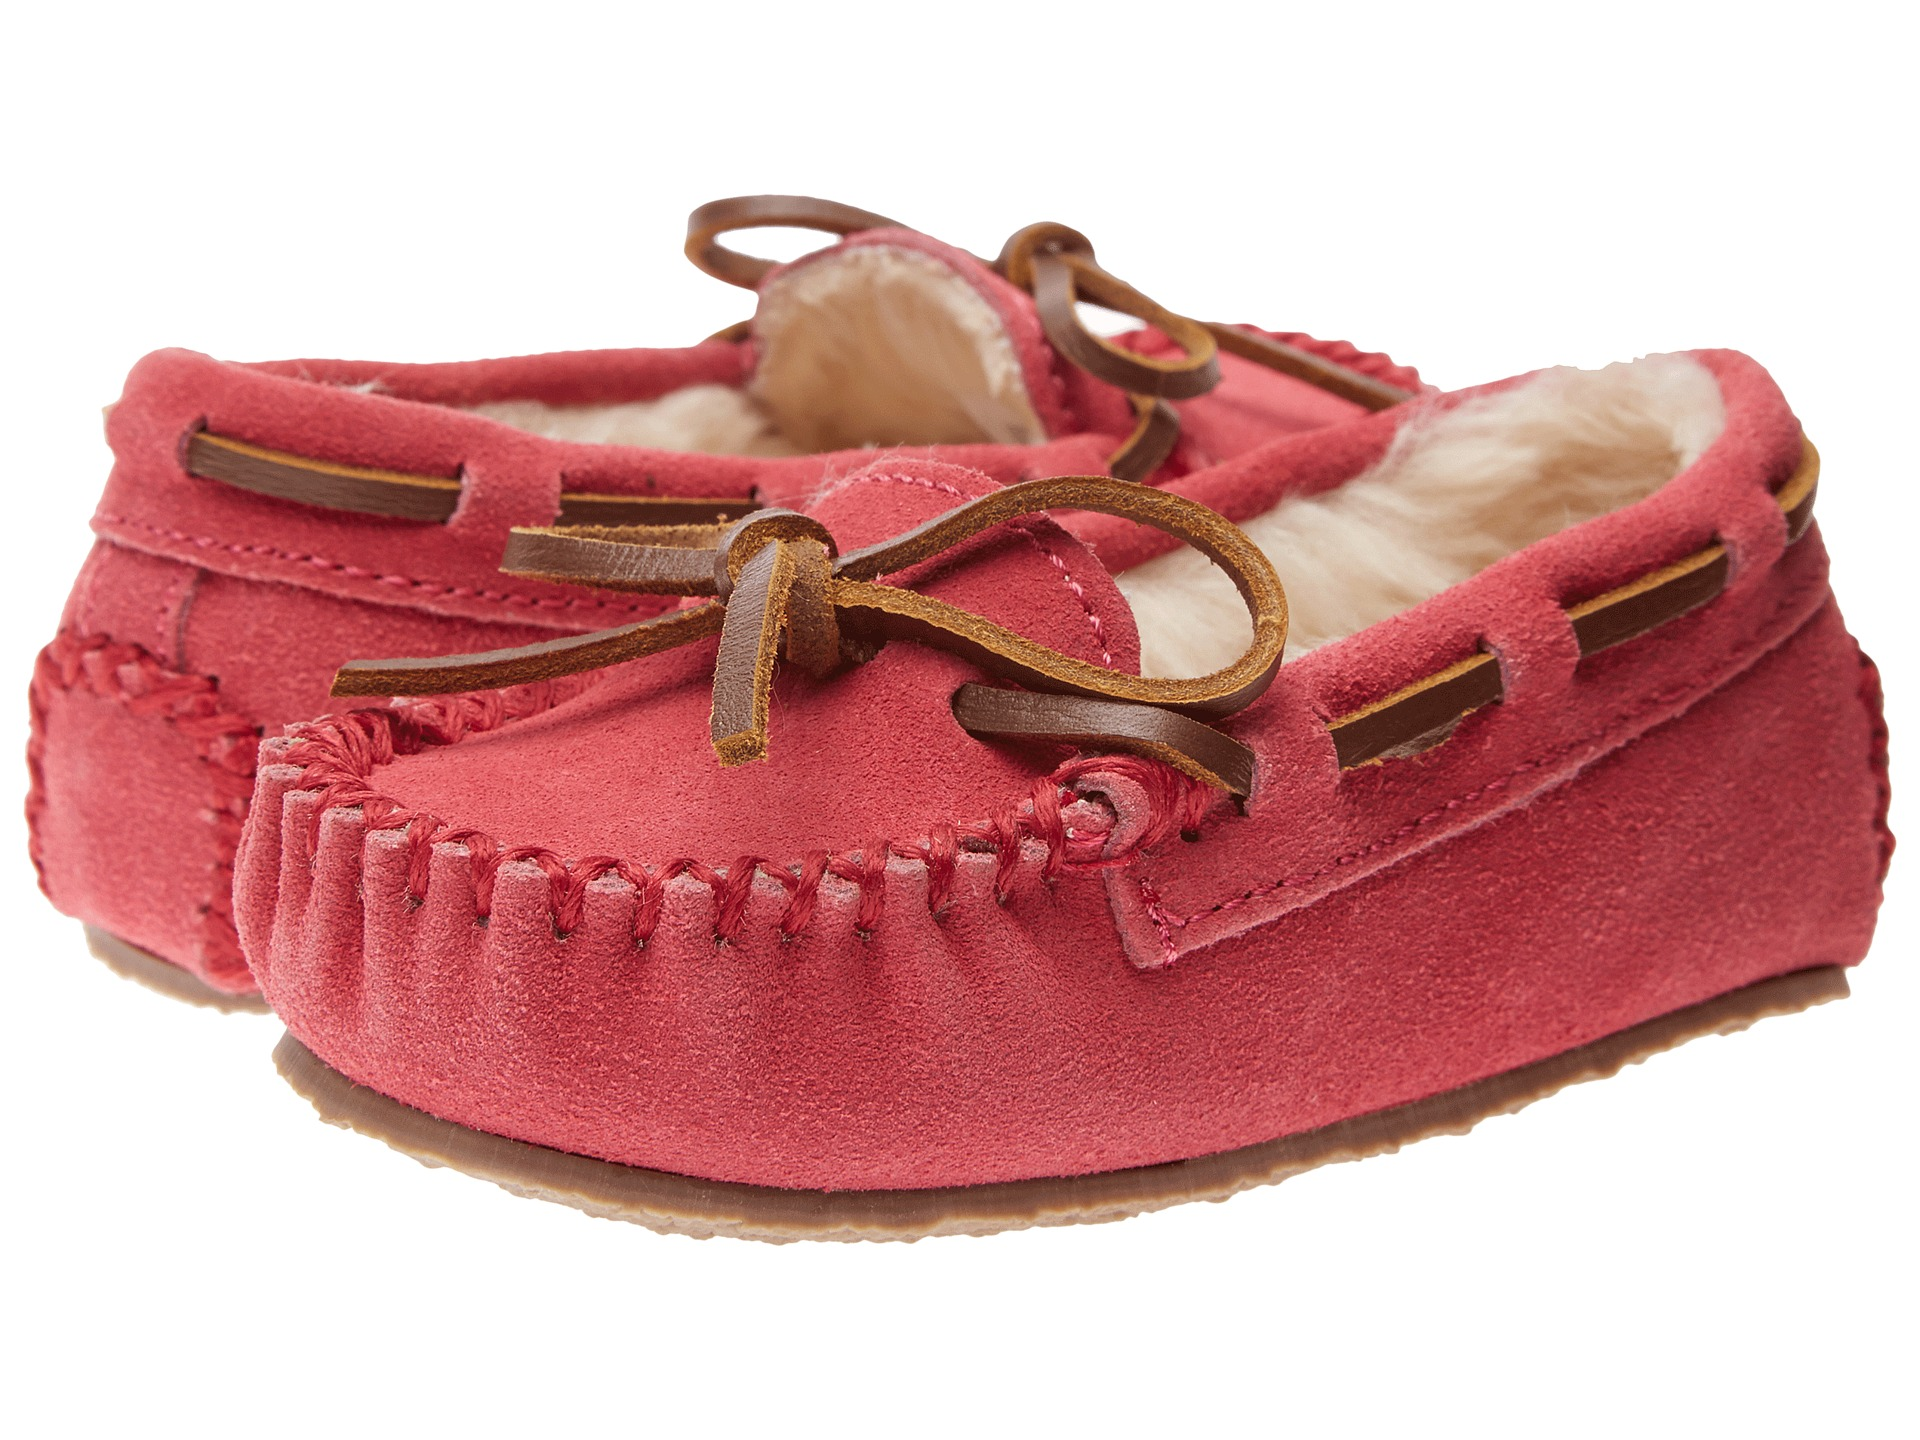 Find great deals on eBay for kids slippers. Shop with confidence.